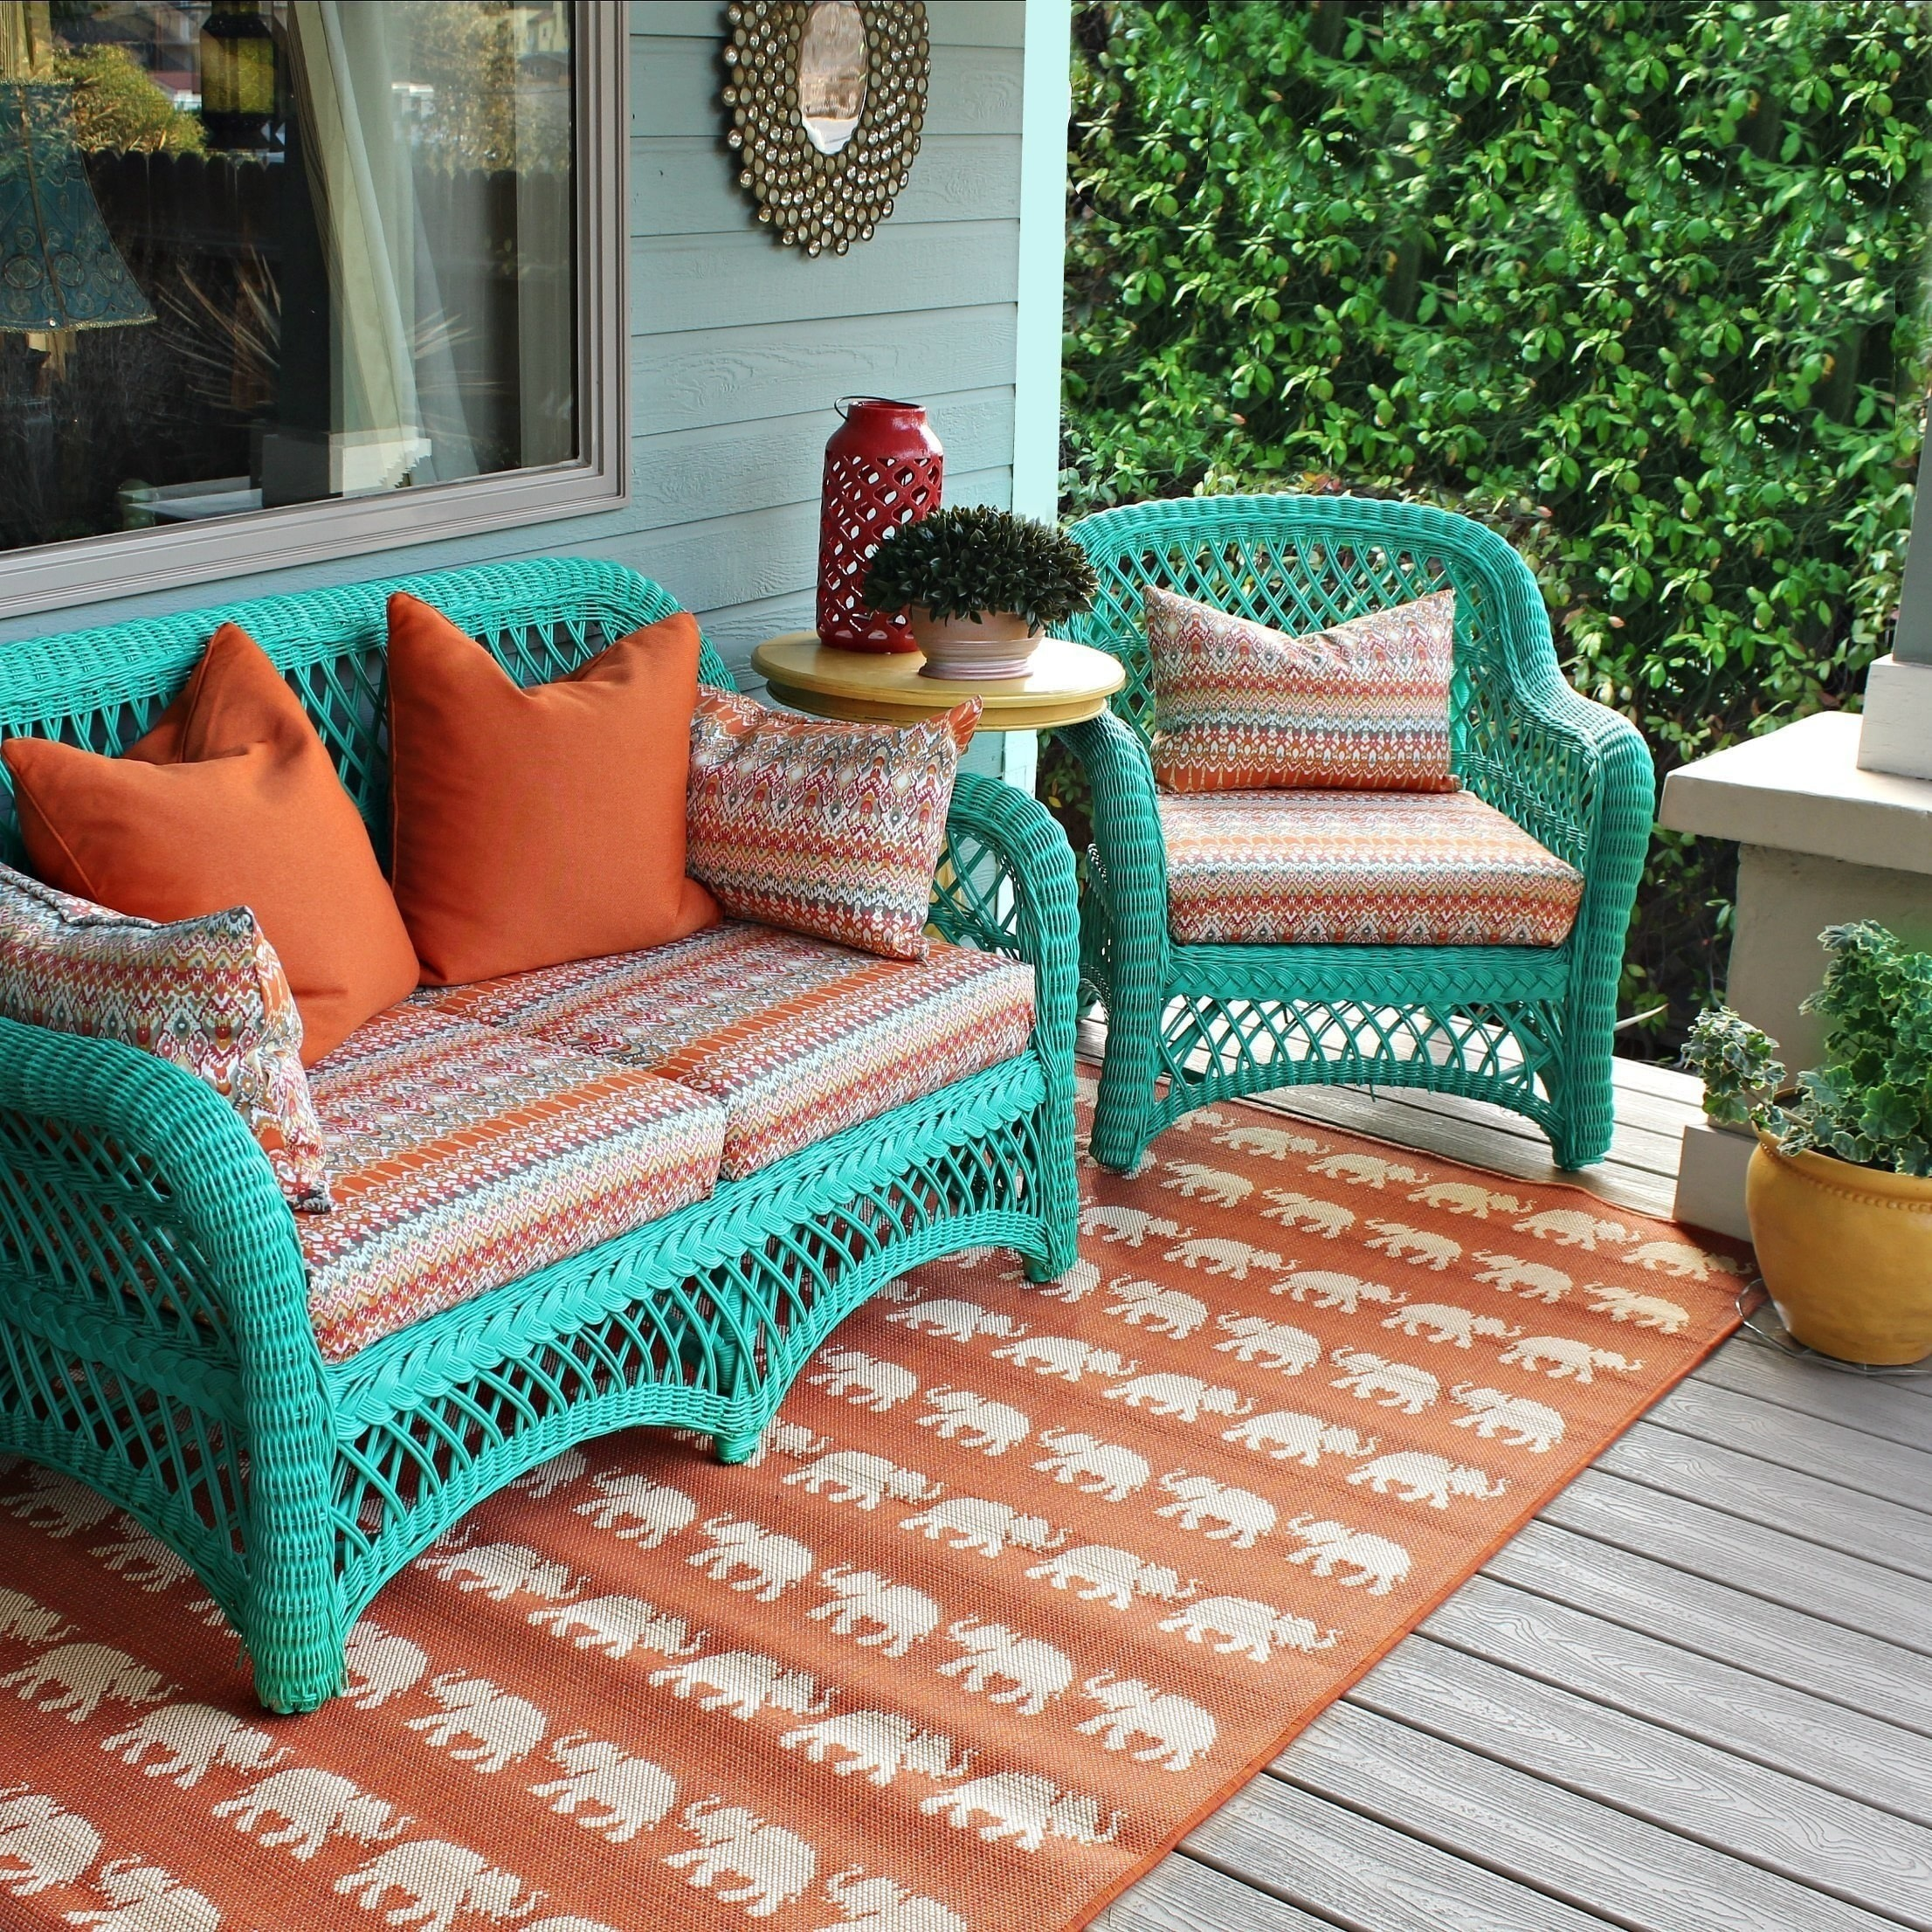 No Sew Patio Cushions And Pillows  How To Make A PillowCushion  Decorating on Cut Out  Keep